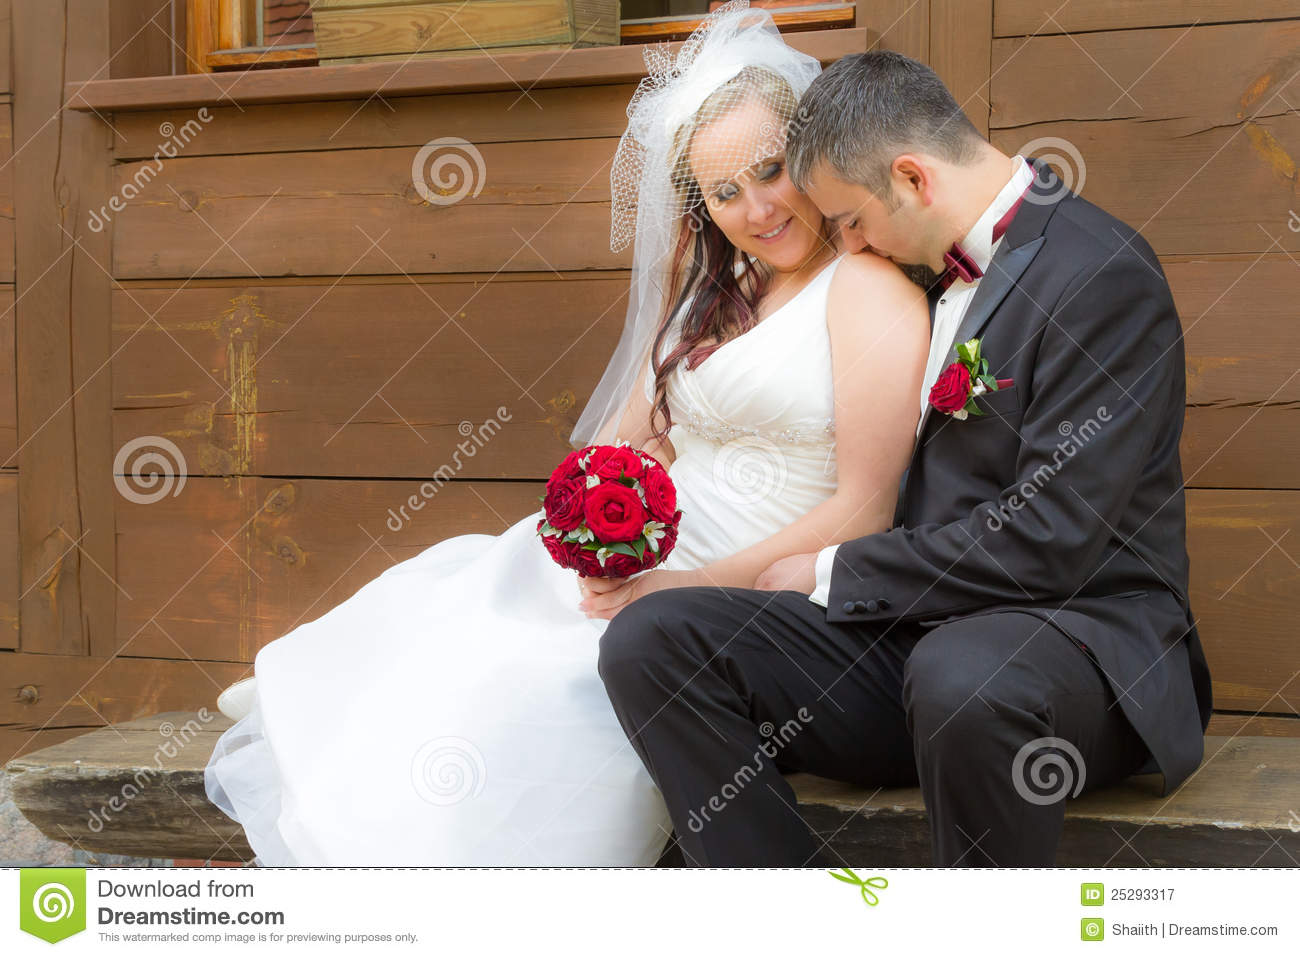 Just Married Couple In A Romantic Scene Stock Image